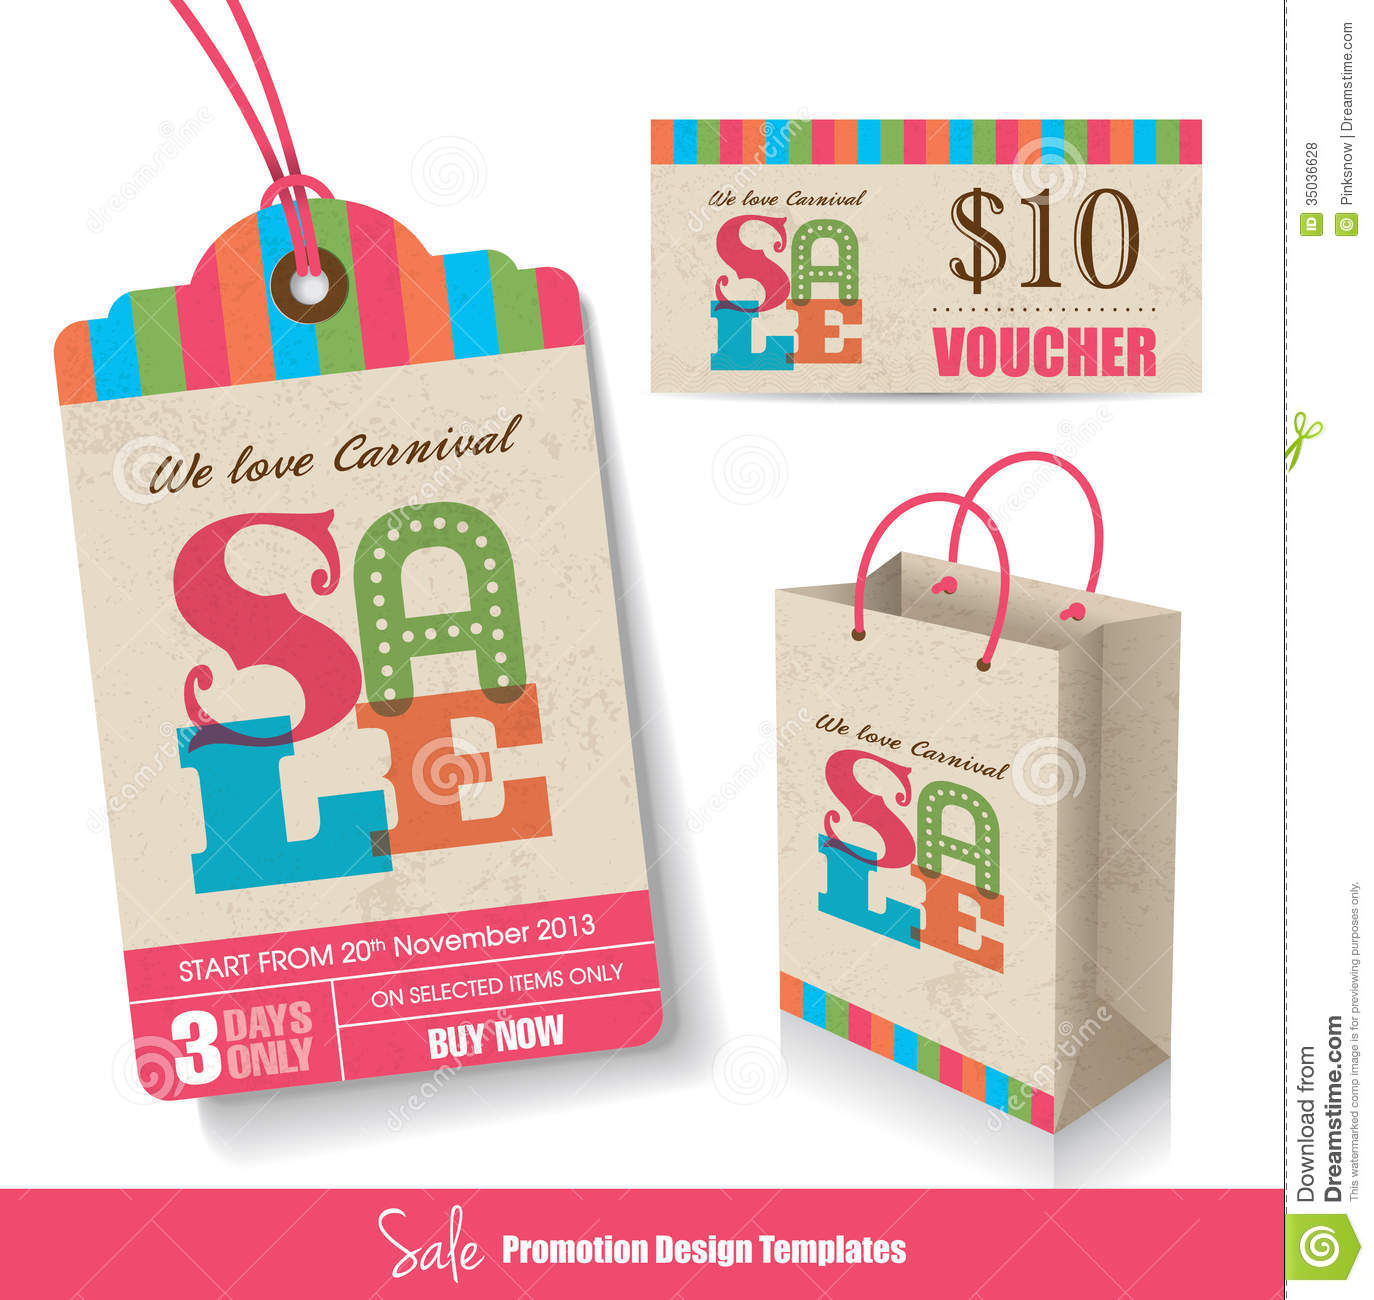 Sale Promotion Templates Royalty Free Stock Photos Image